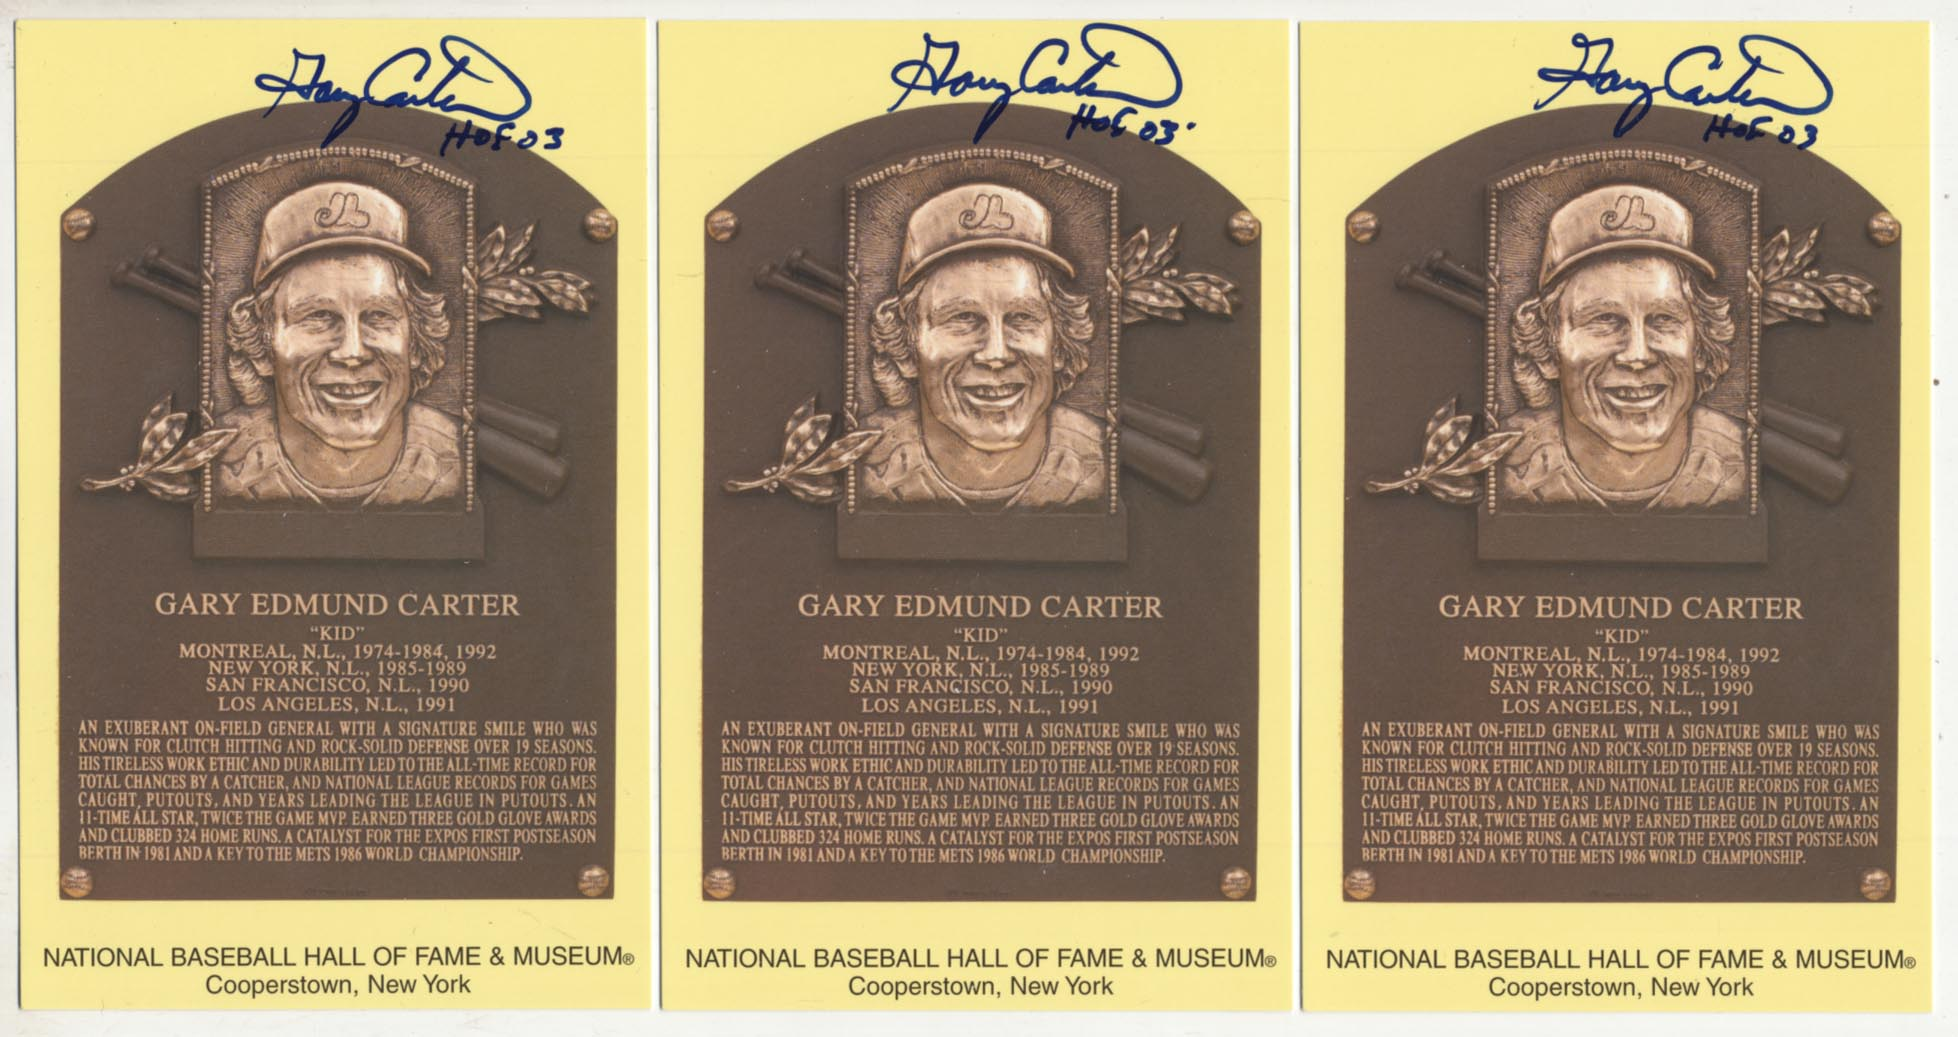 Lot #63  Yellow HOF Plaque  Gary Carter (lot of 10) Cond: 9.5